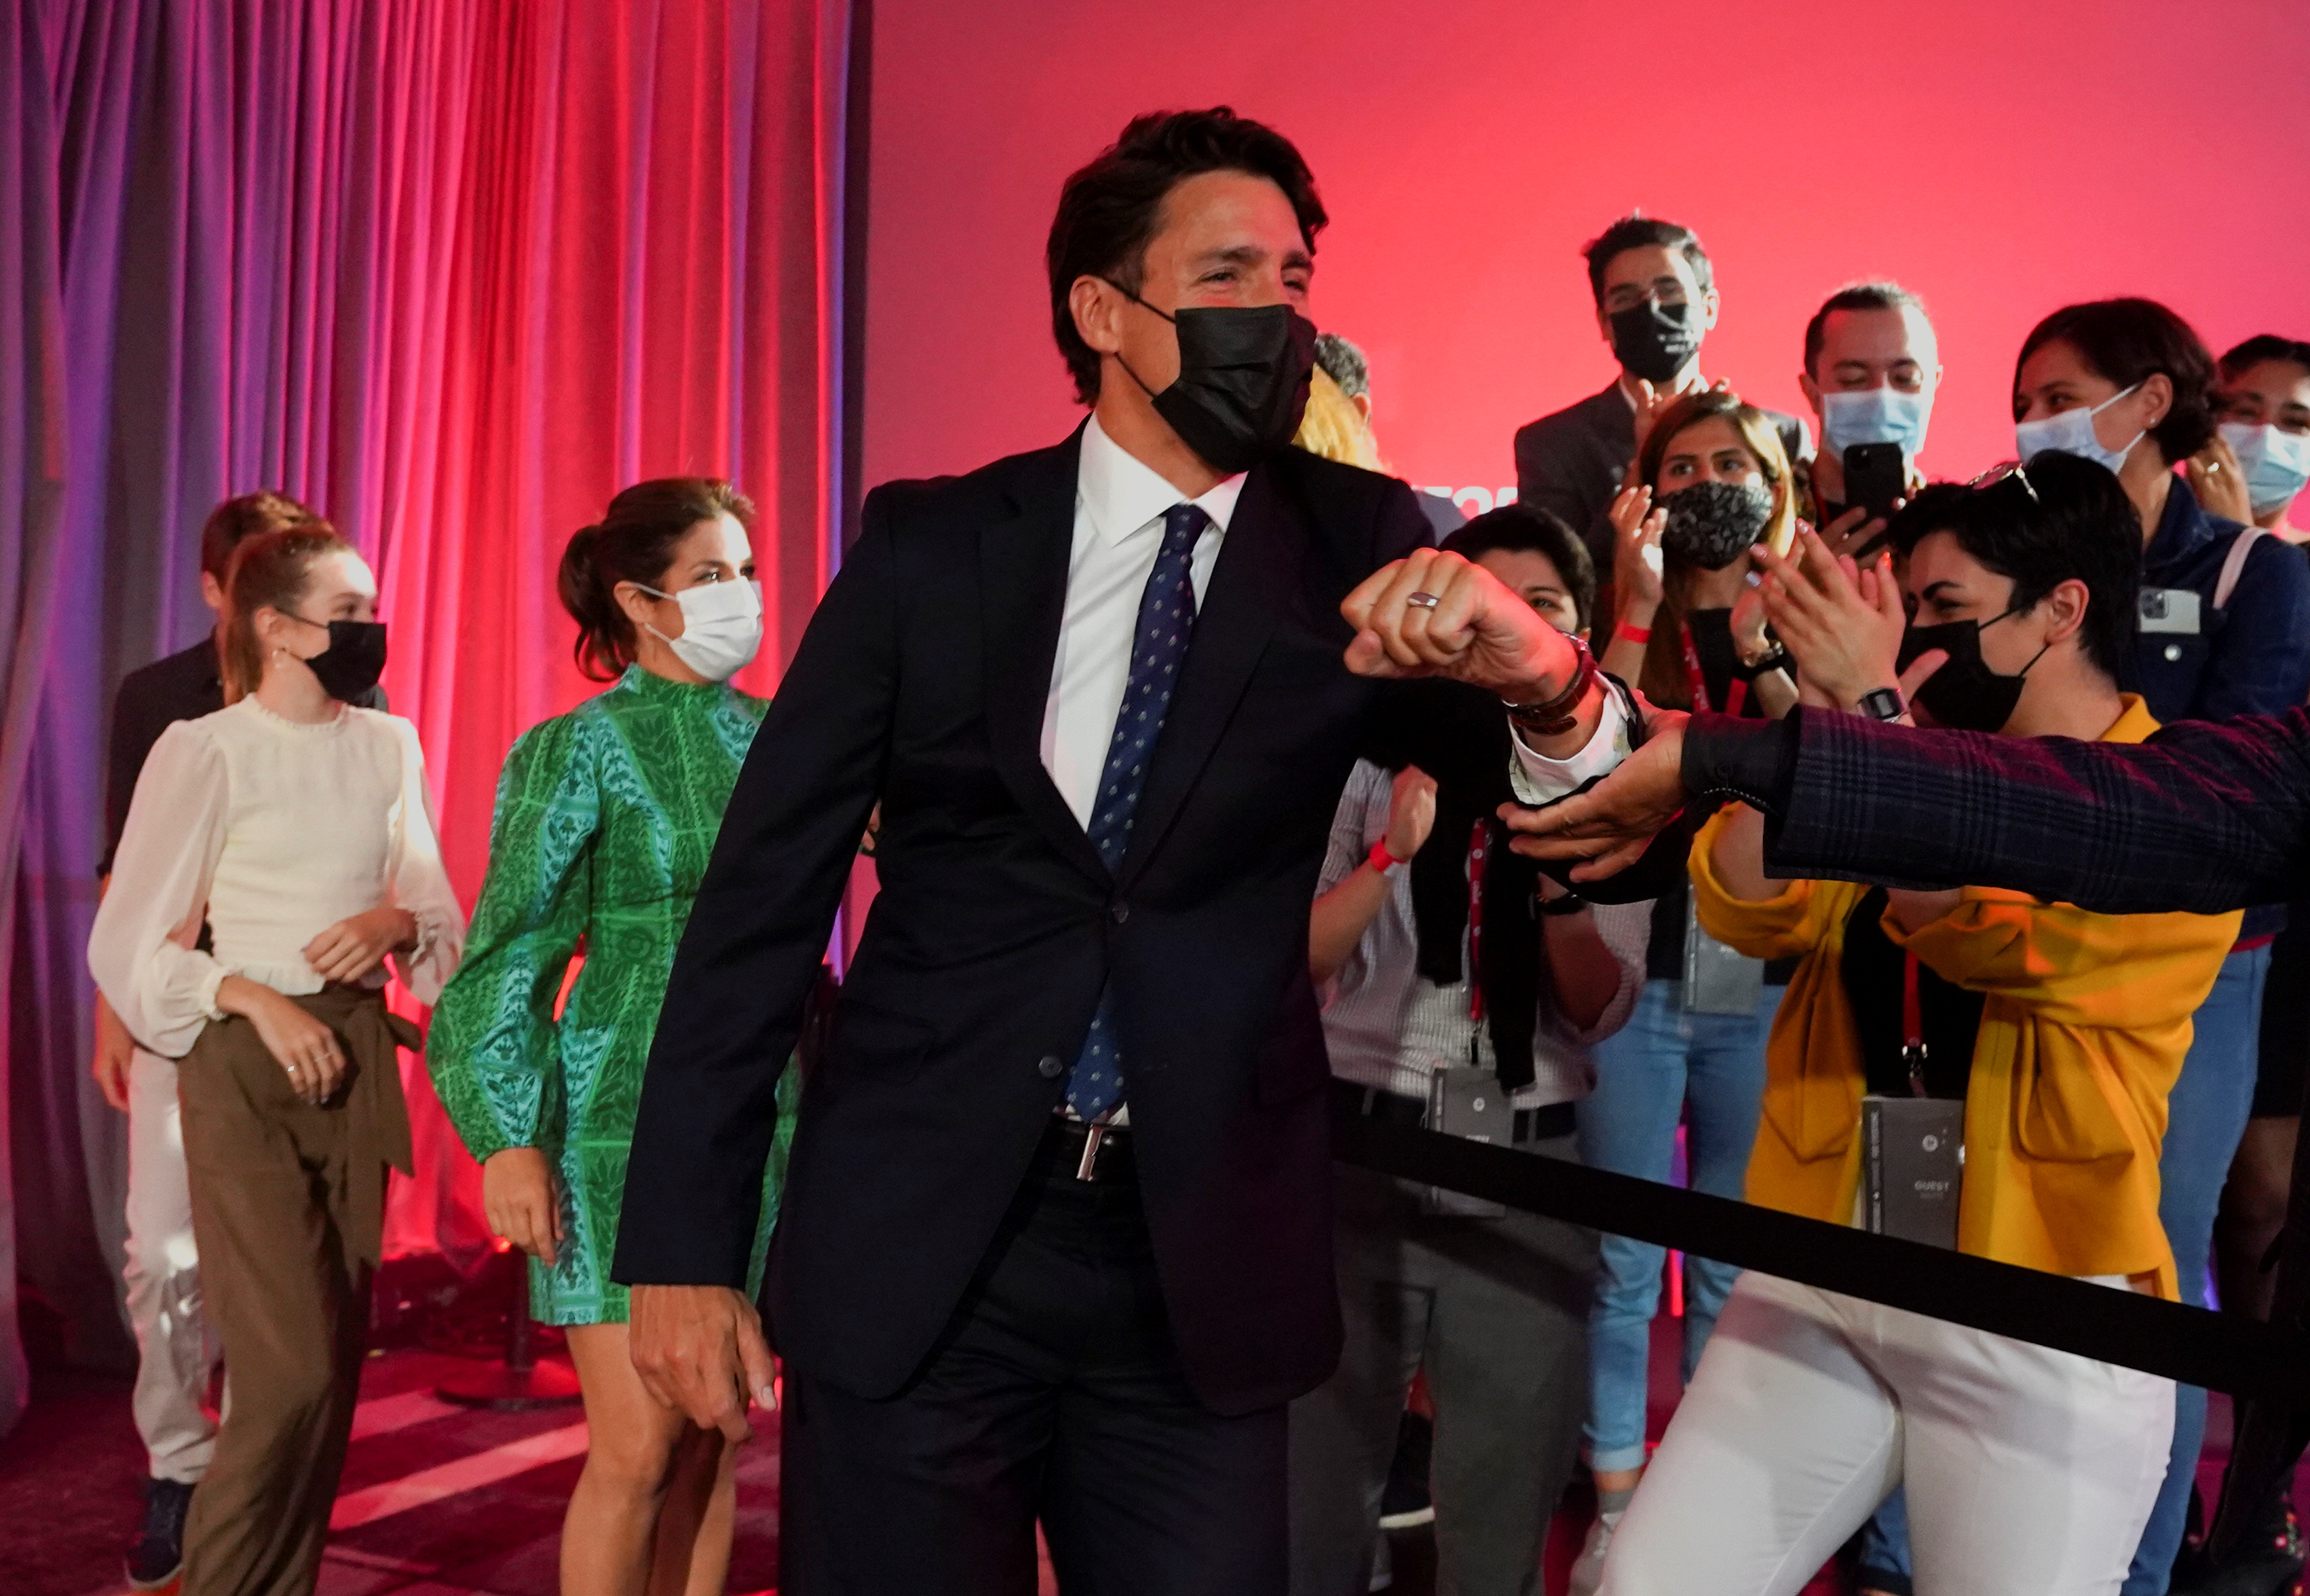 Canada's Liberal Prime Minister Justin Trudeau greets supporters during the Liberal election night party in Montreal, Quebec, Canada, September 21, 2021. REUTERS/Carlos Osorio